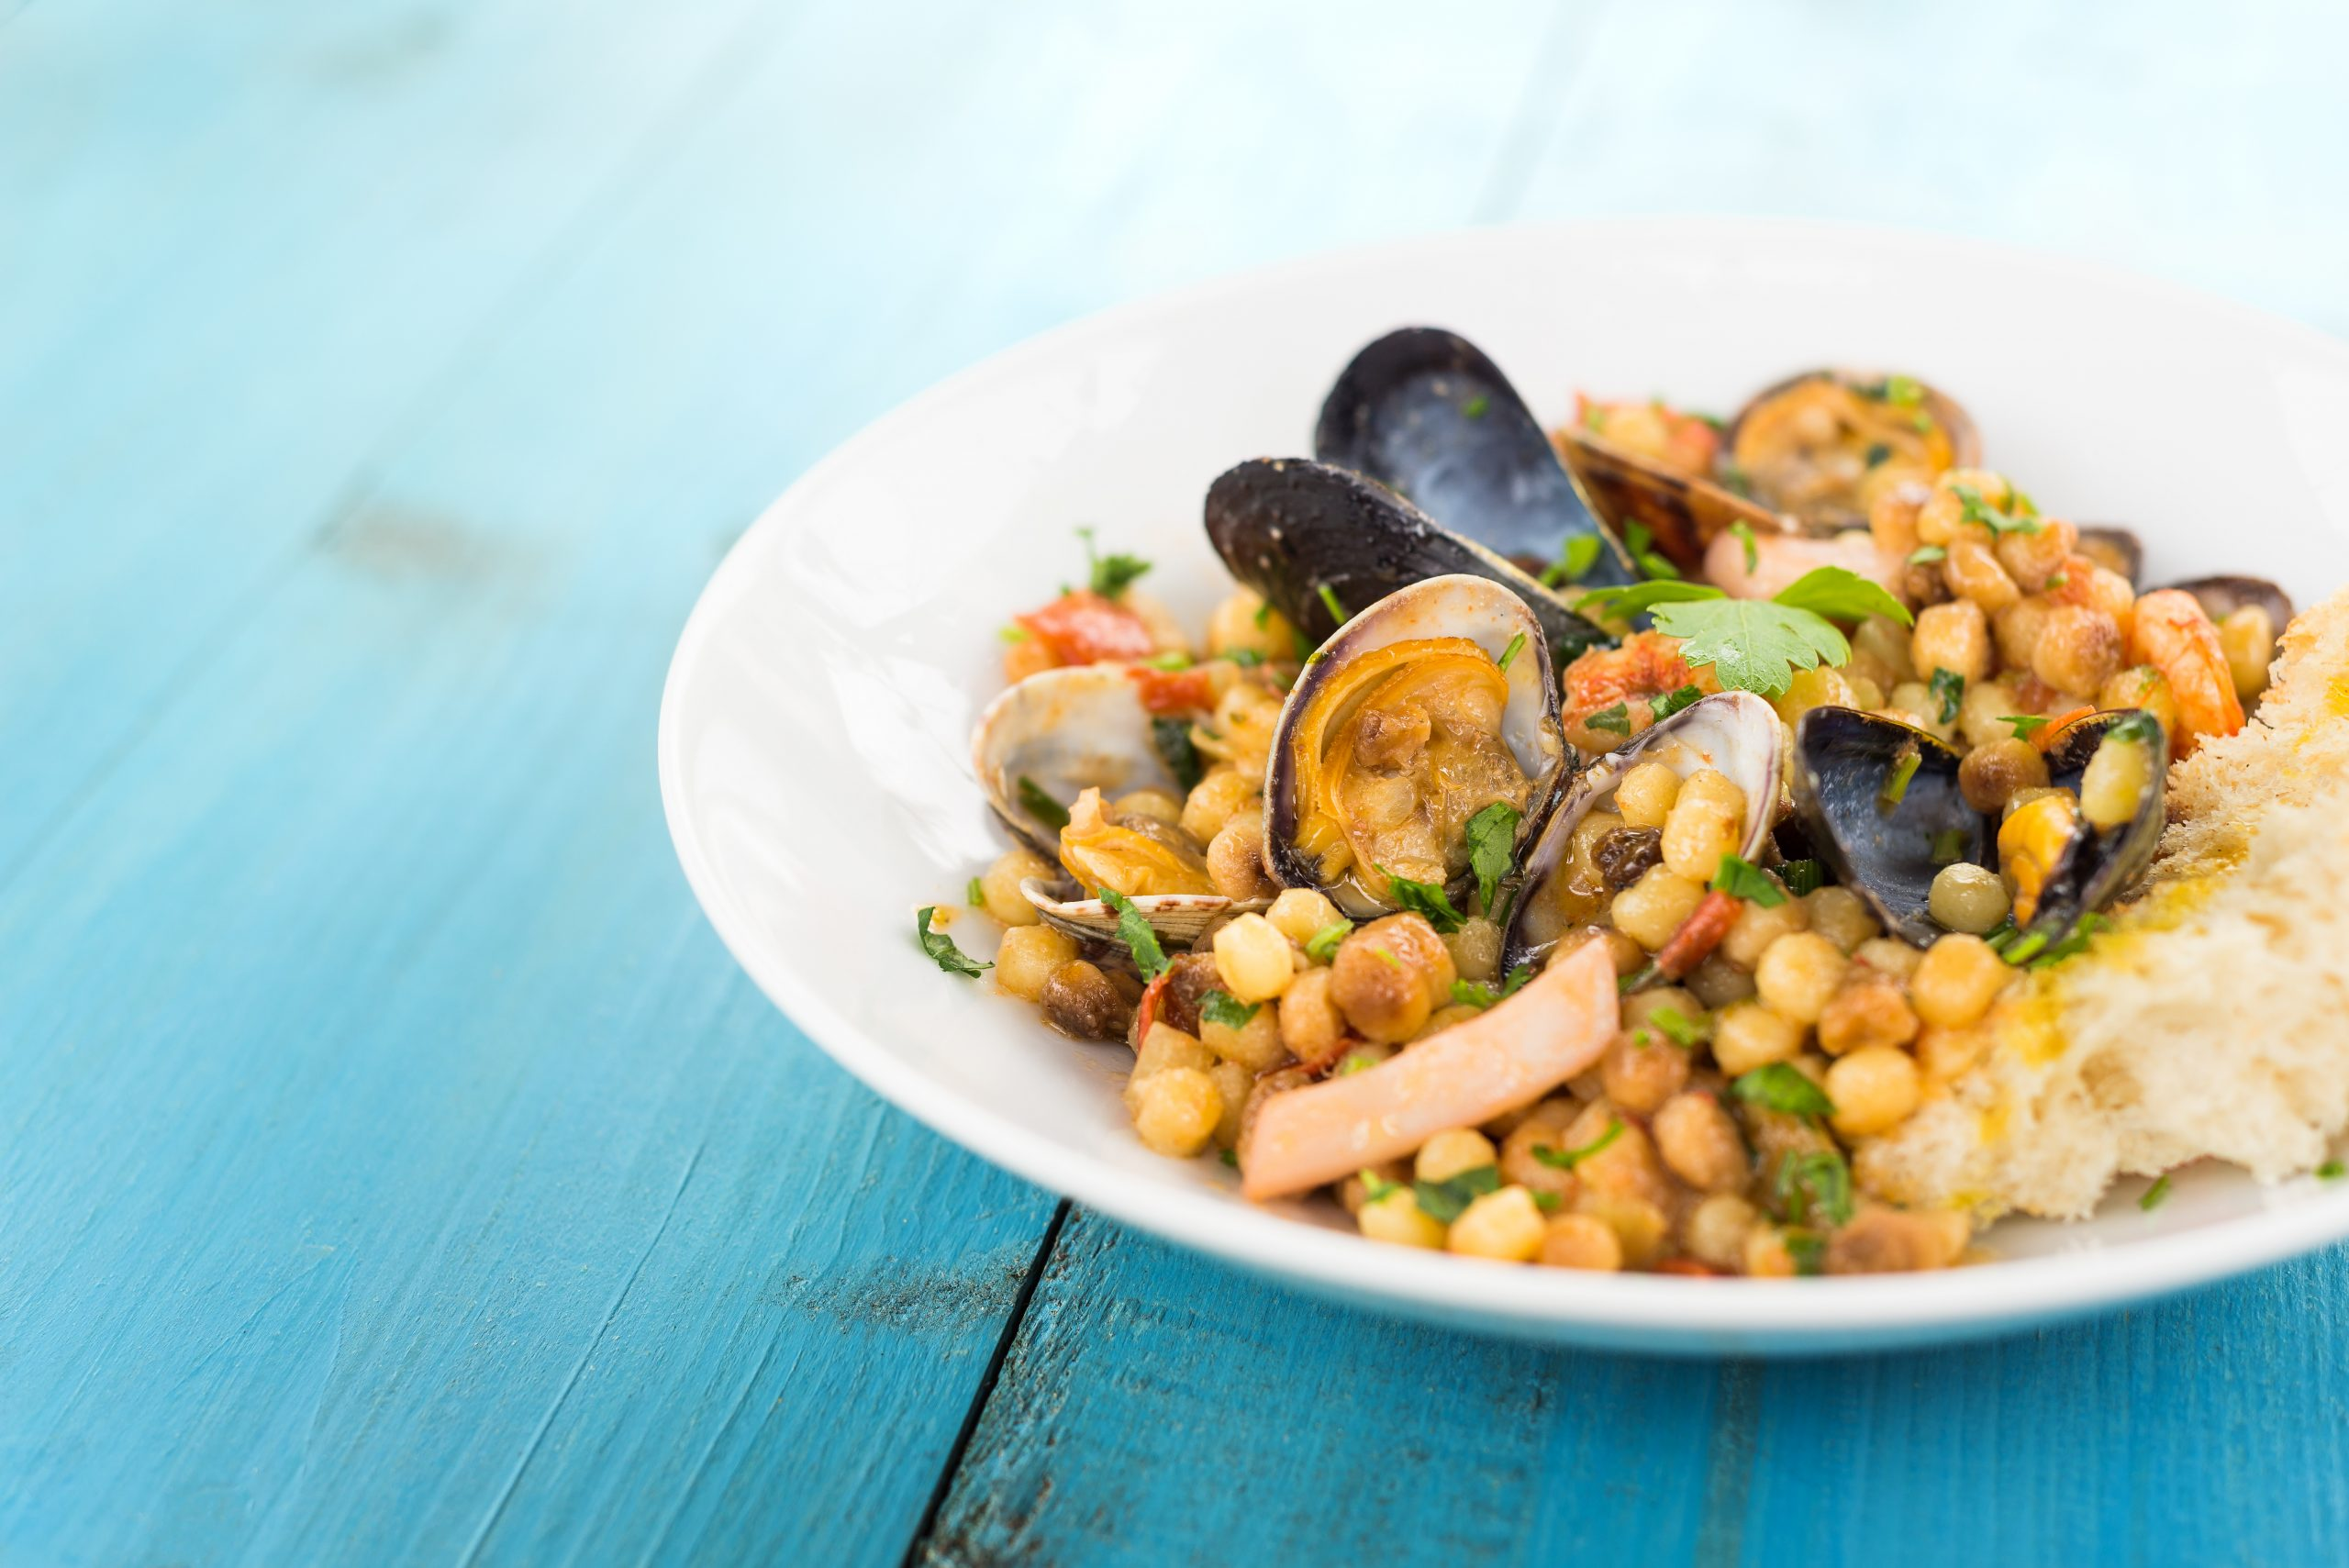 Fregula,With,Seafood,,Traditional,Sardinian,Recipe,With,Durum,Wheat,Semolina